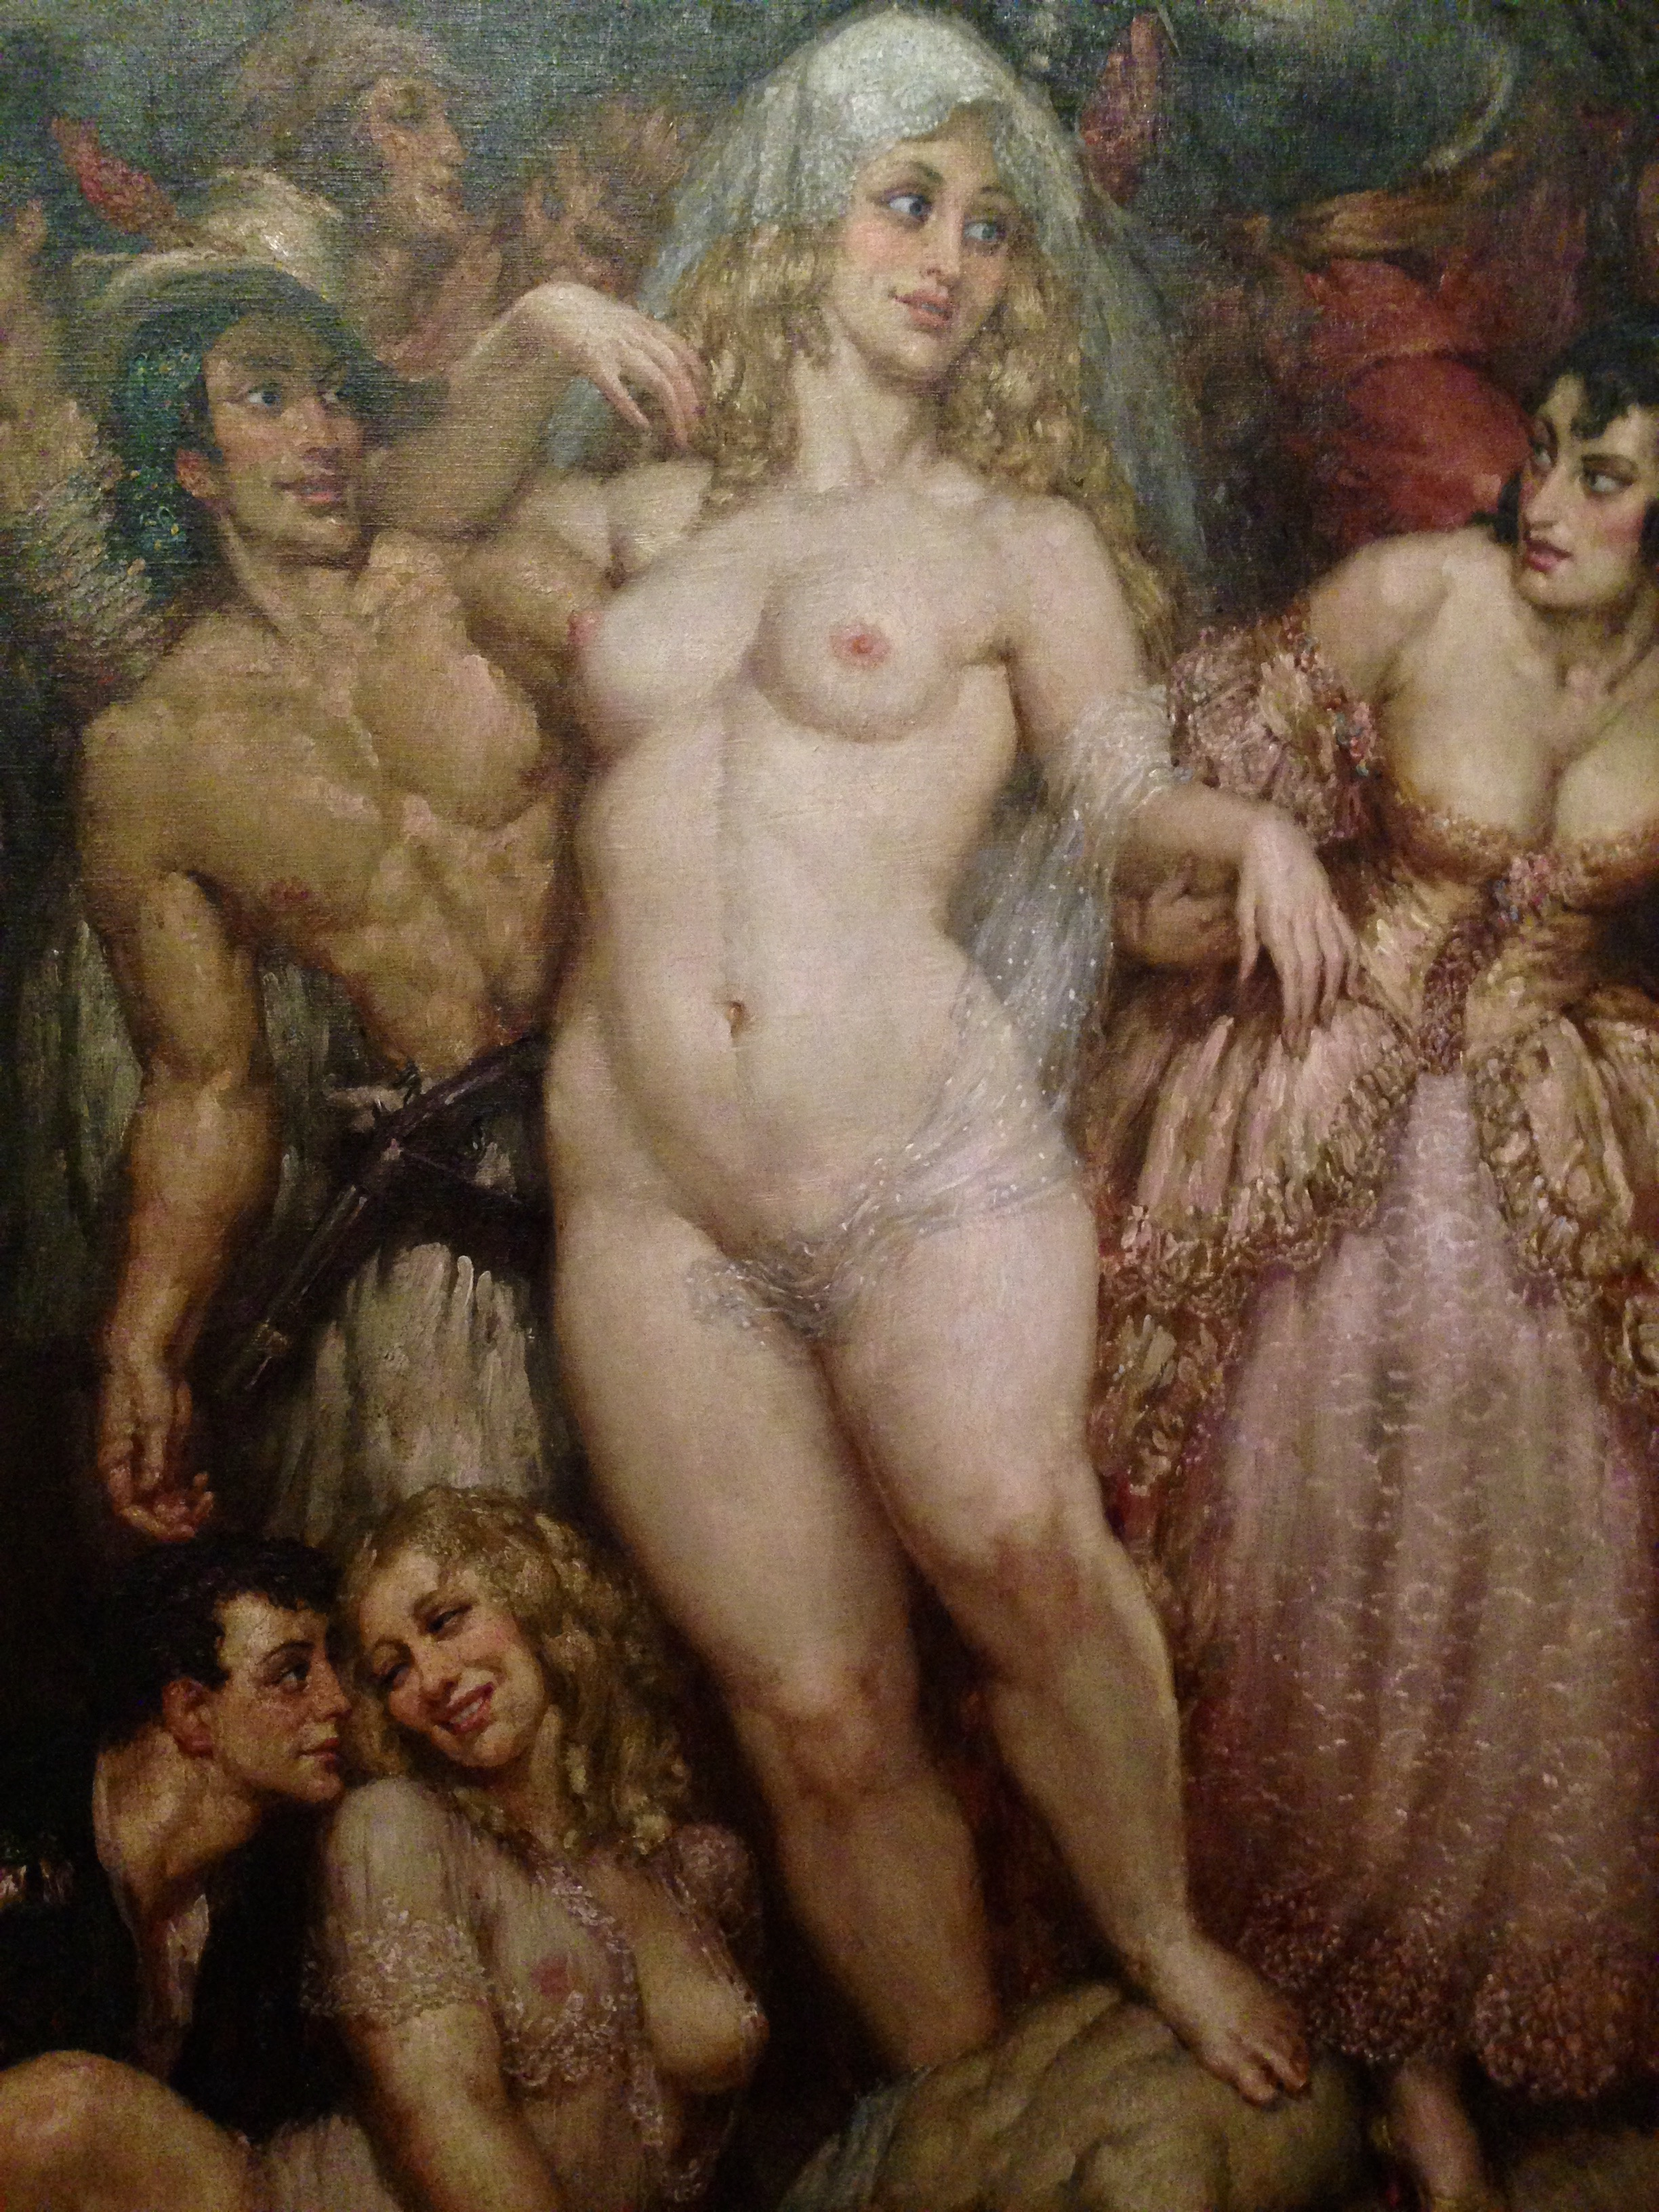 I thought this painting by Norman Lindsay, Who Conquers Fear, 1945, is perfect for this story! A confident and voluptuous woman, who seems rather happy and fulfilled. I saw this at Bendigo art gallery last year. I think Norman Lindsay would agree that there is a strong parallel between his subject and Angela White.